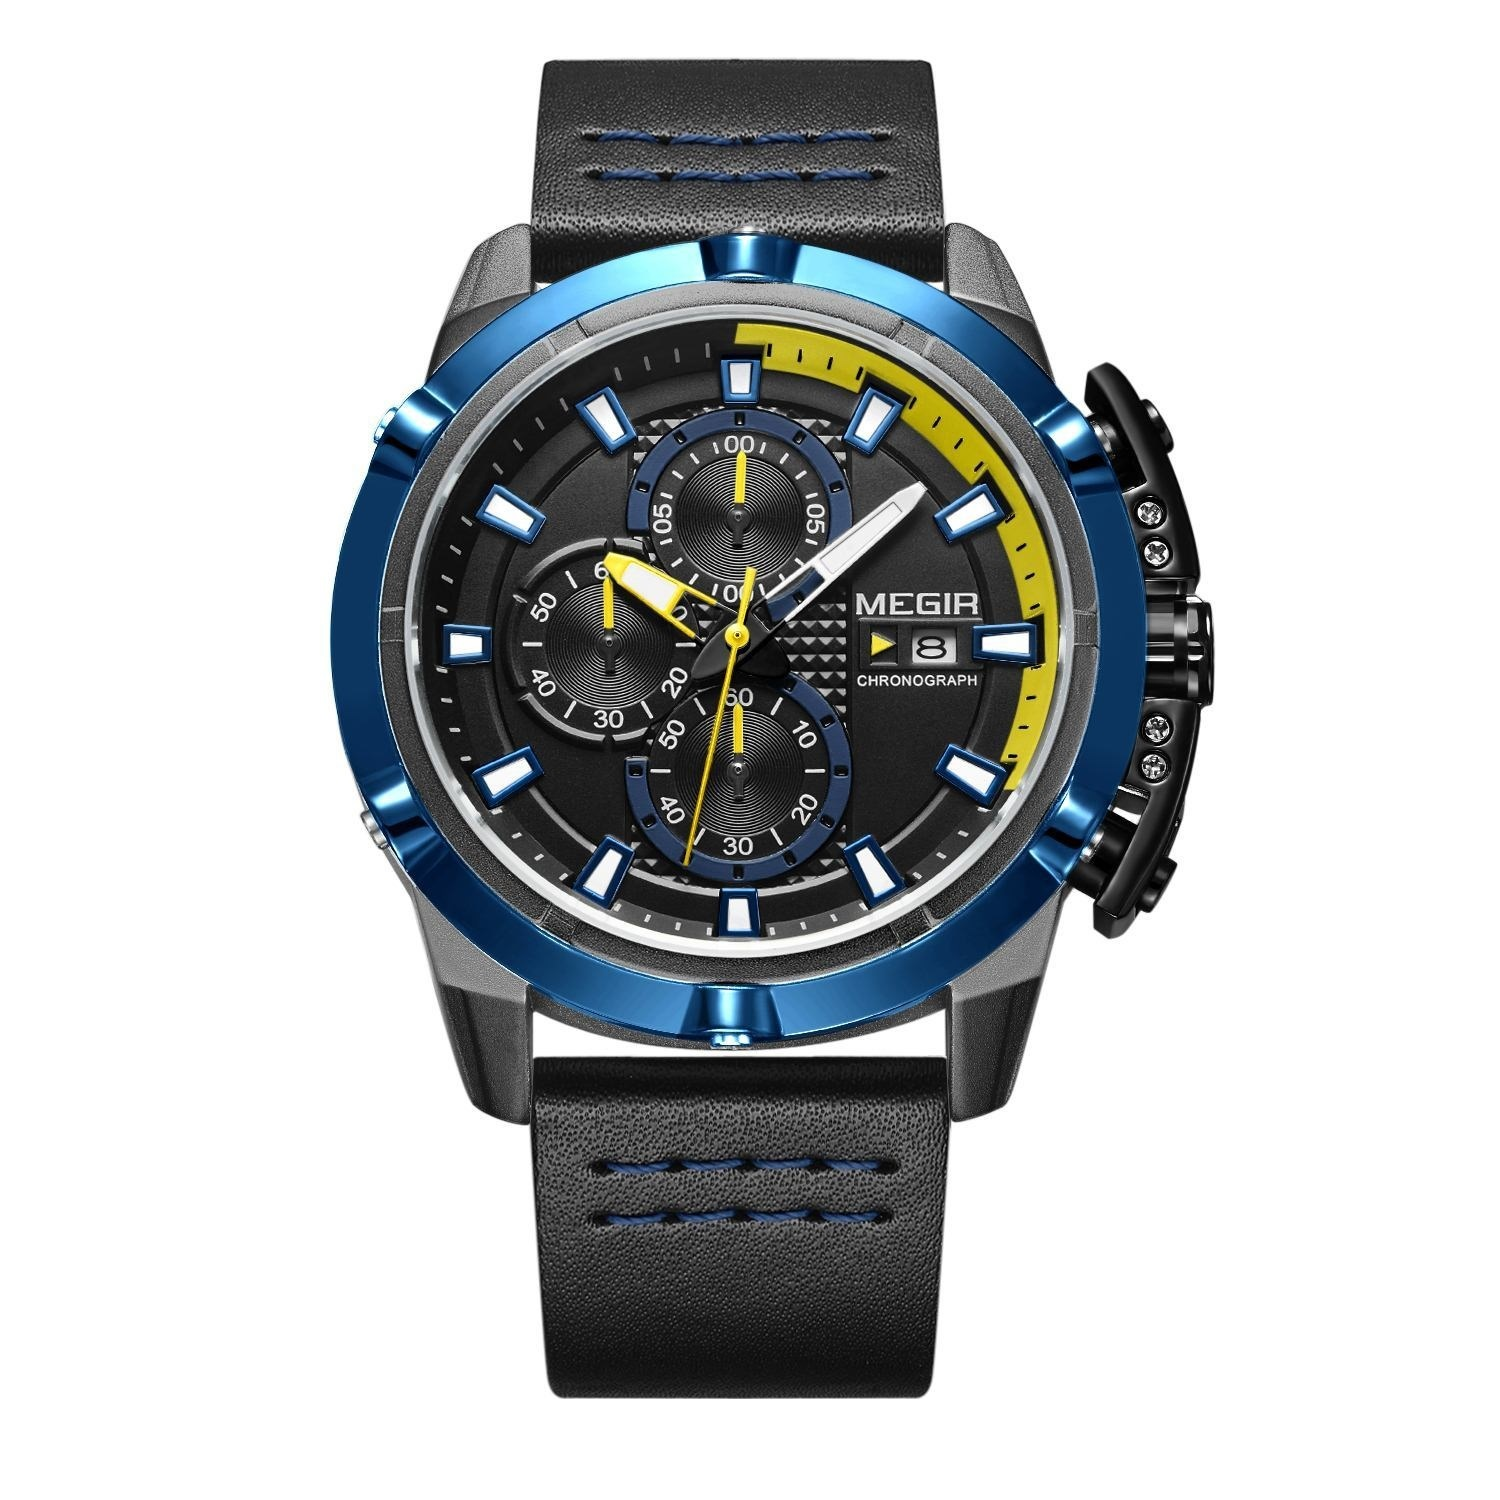 Hunter Blue Chronograph Megir Watches (1).jpg